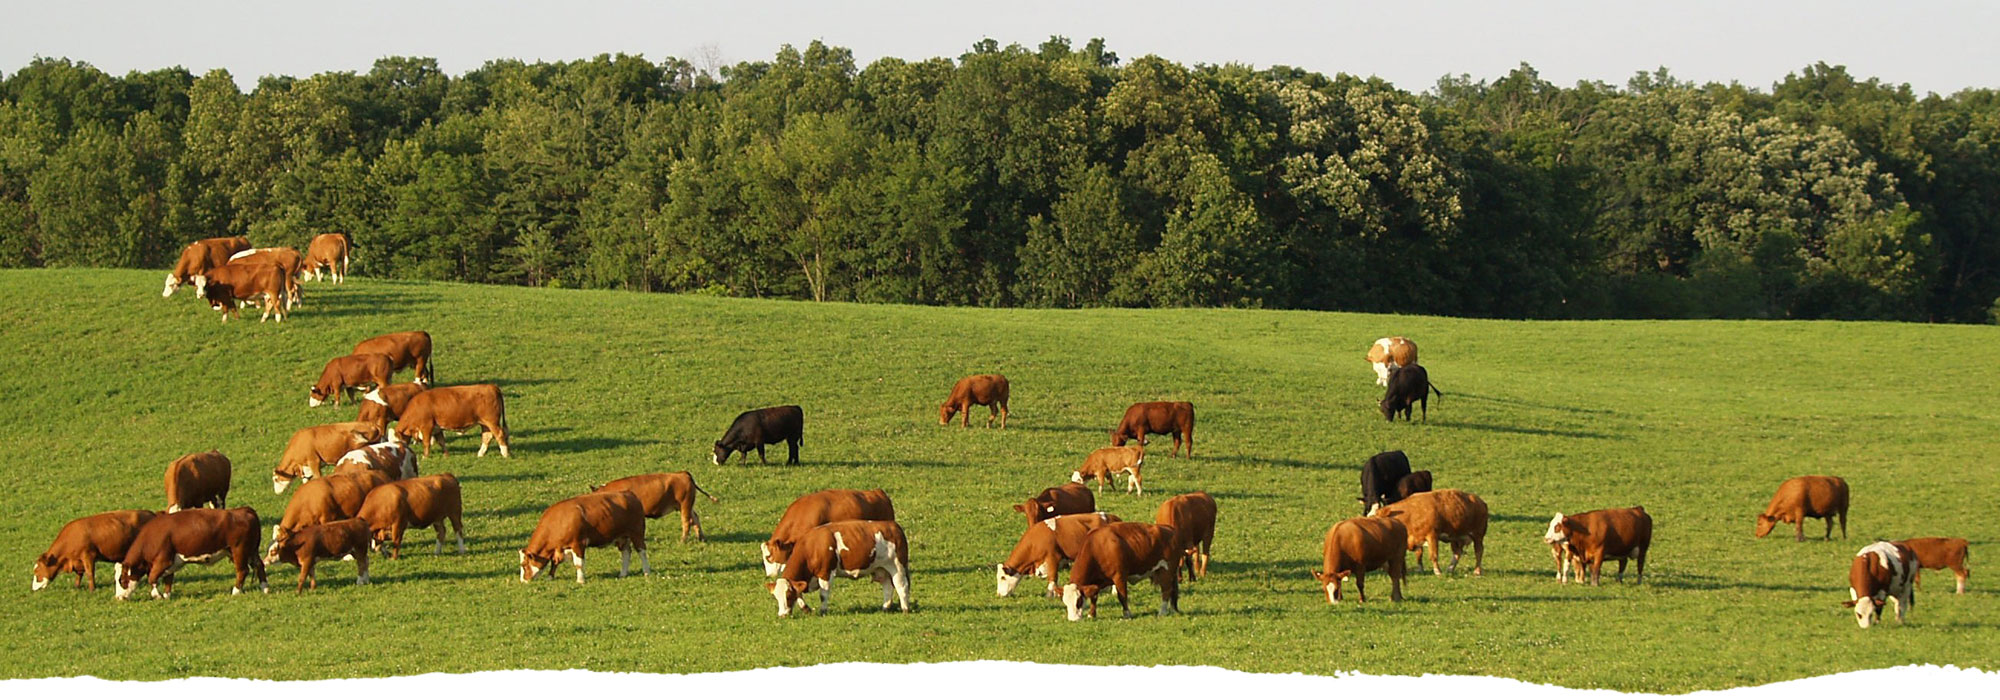 A herd of cattle roaming the grass at Freedom Run Farm.